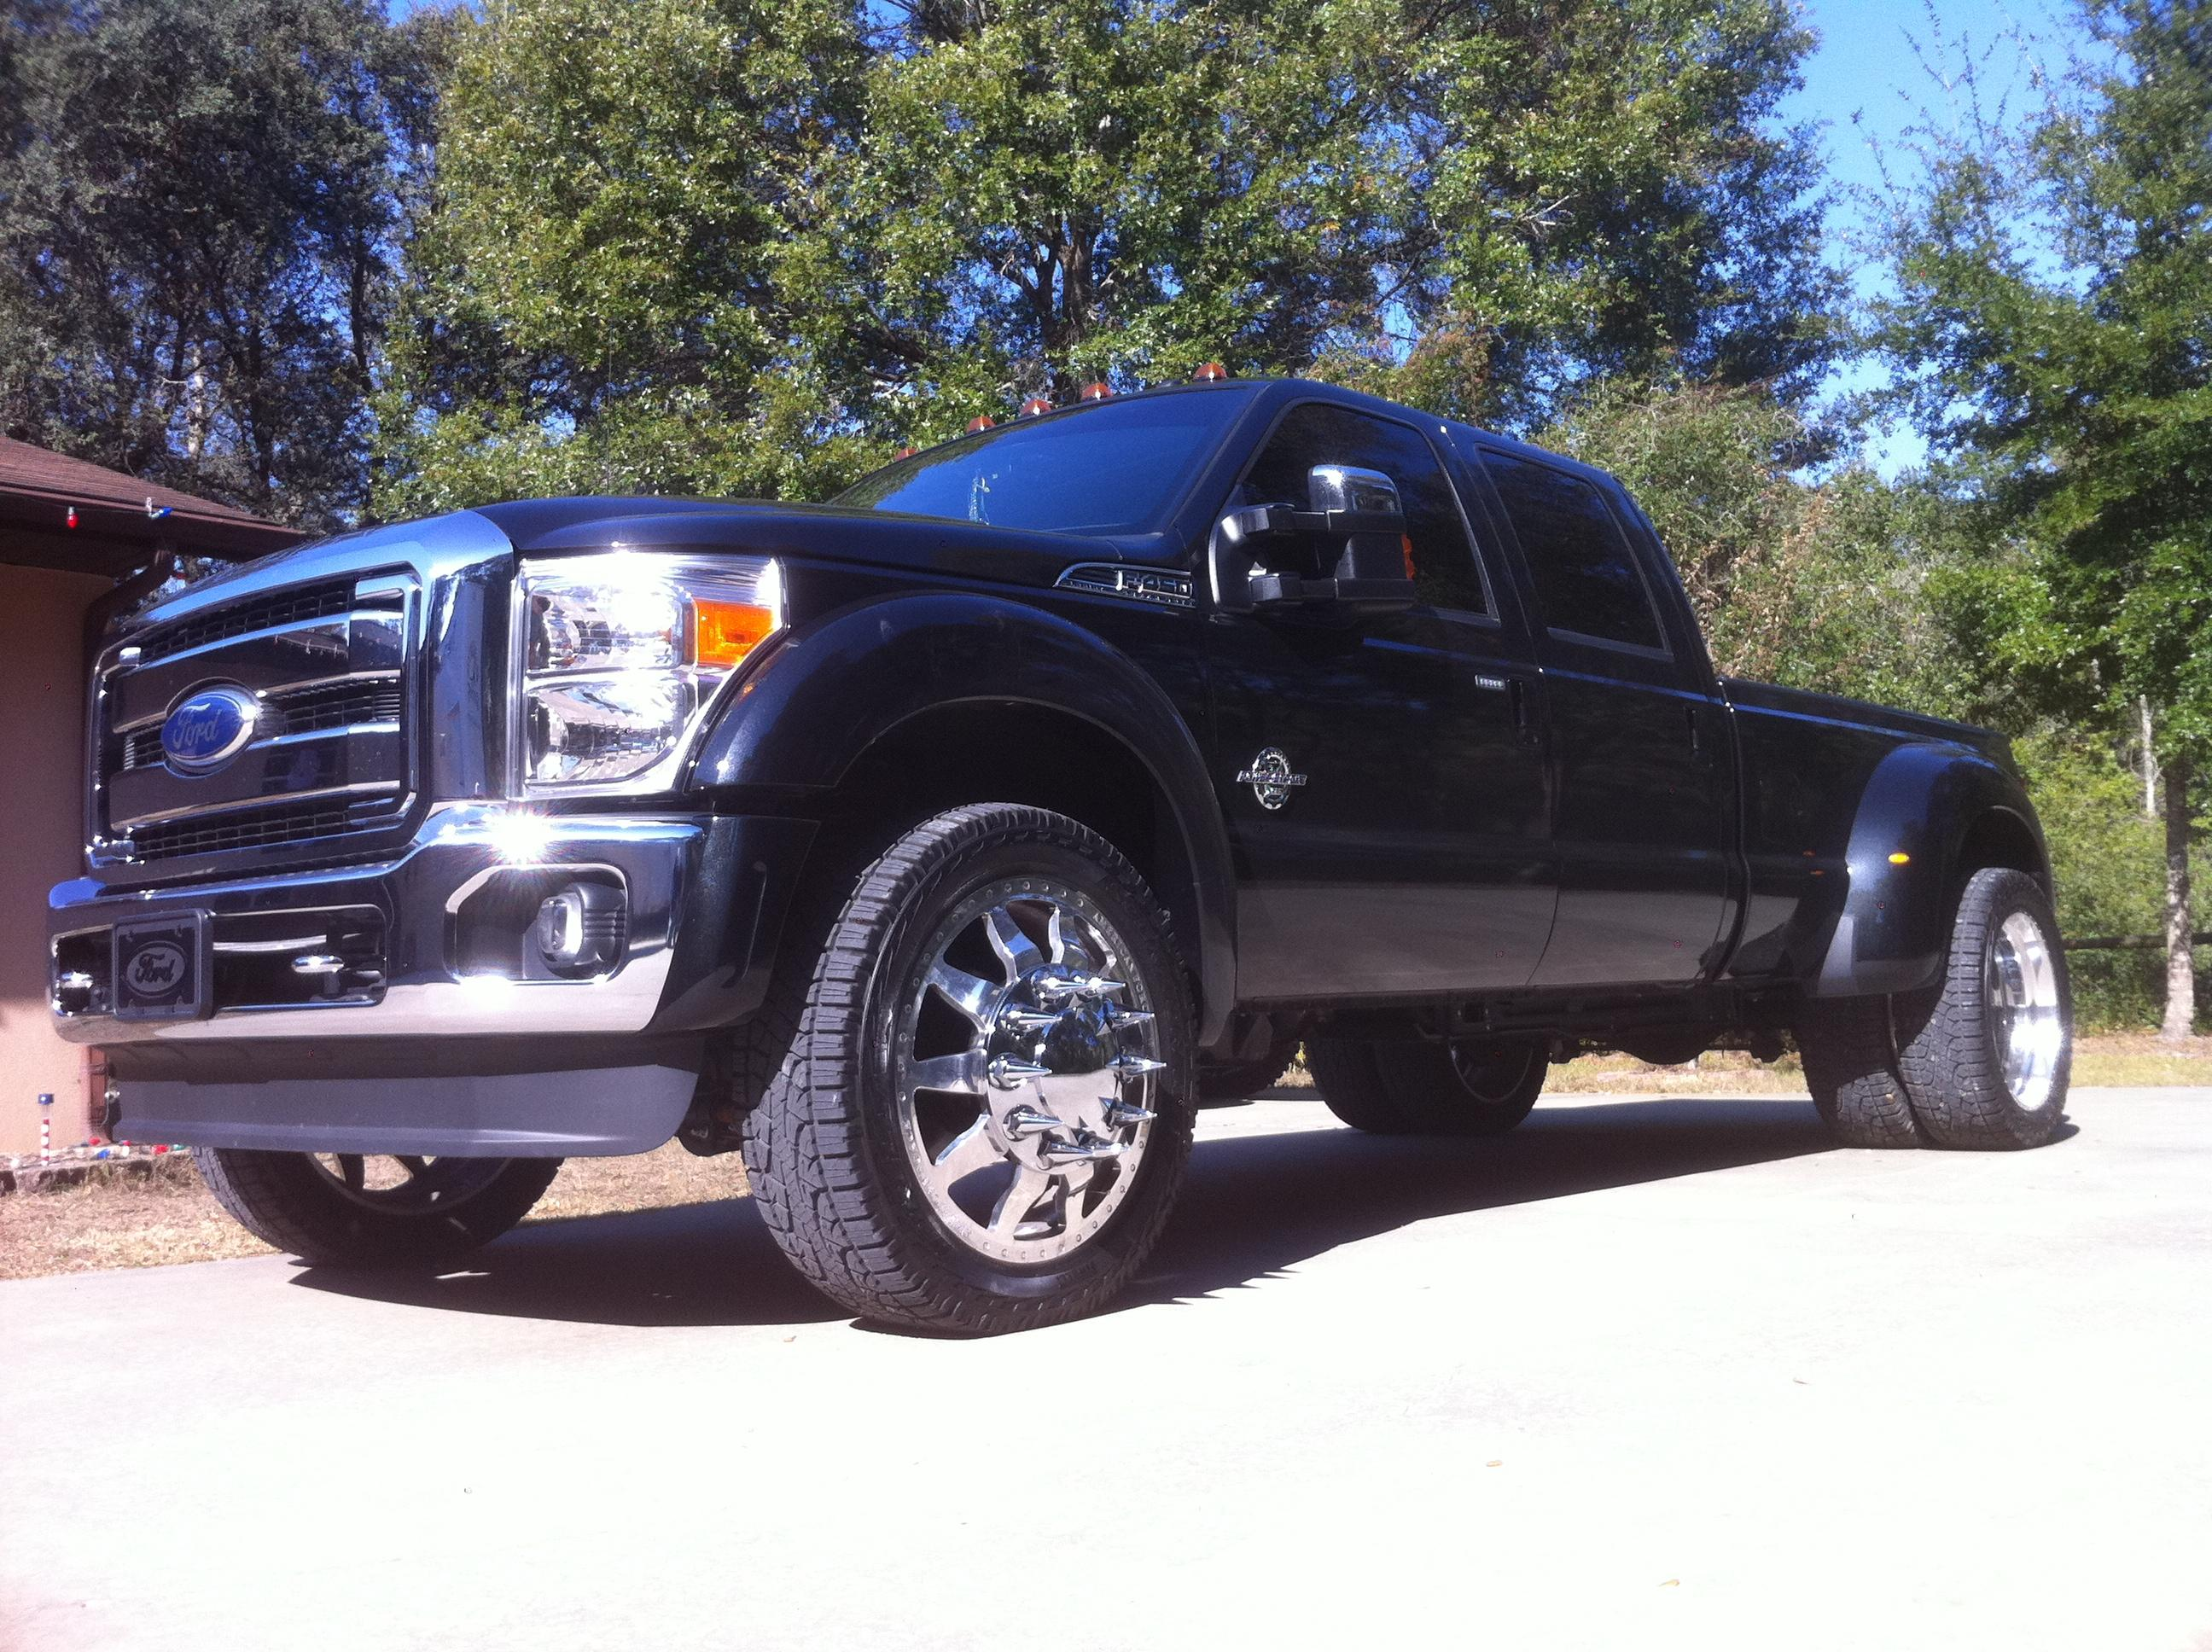 Thecustomshop 2010 Ford F450 Super Duty Crew Cab Specs Photos 1960 To 1968